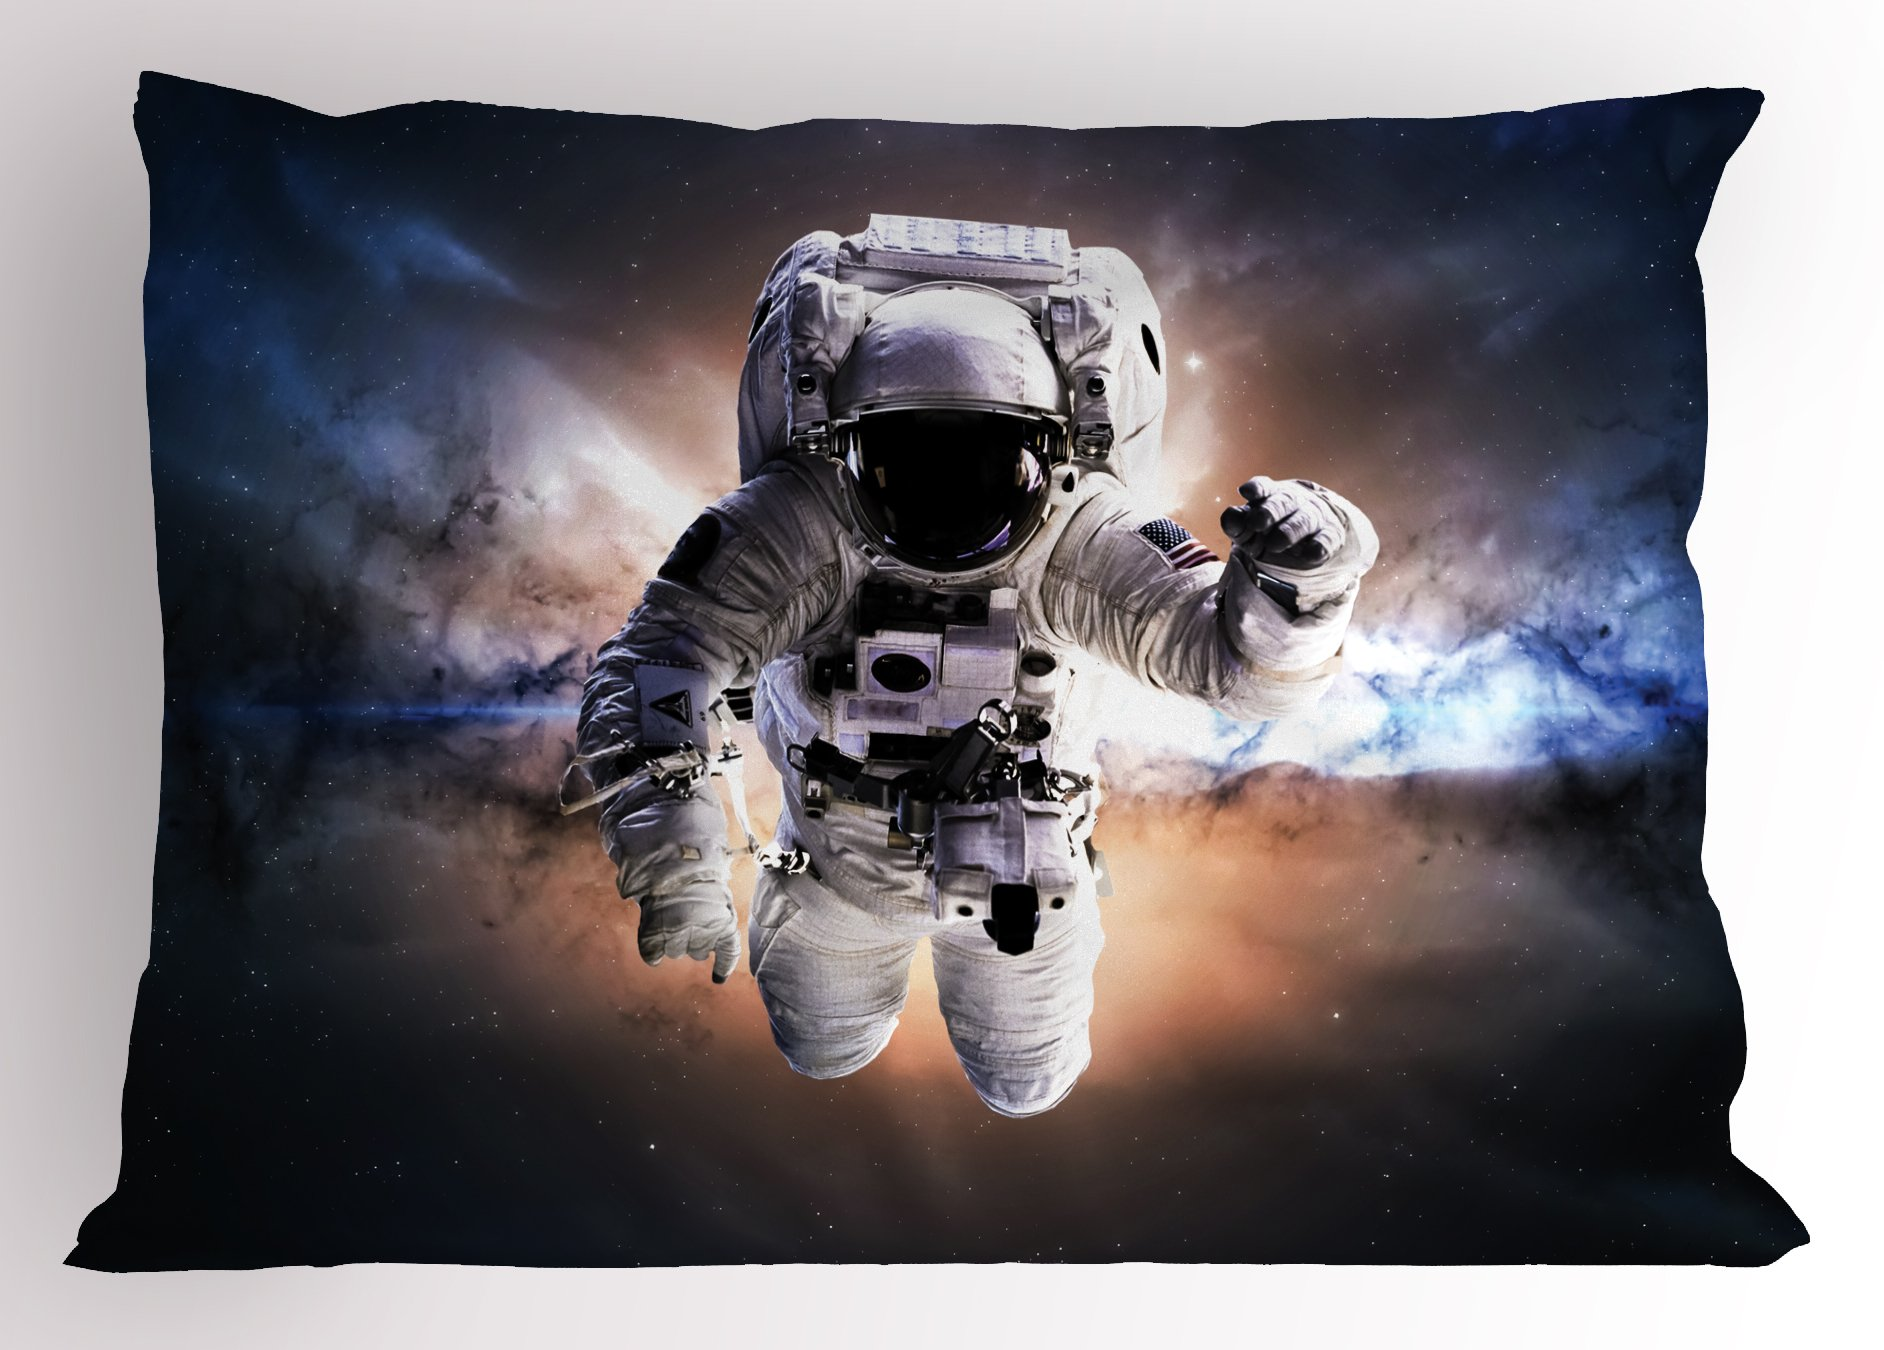 Ambesonne Astronaut Pillow Sham, Floating Astronaut in Space Nebula Heavenly Bodies Star Systems Love Science, Decorative Standard Queen Size Printed Pillowcase, 30 X 20 Inches, Multicolor